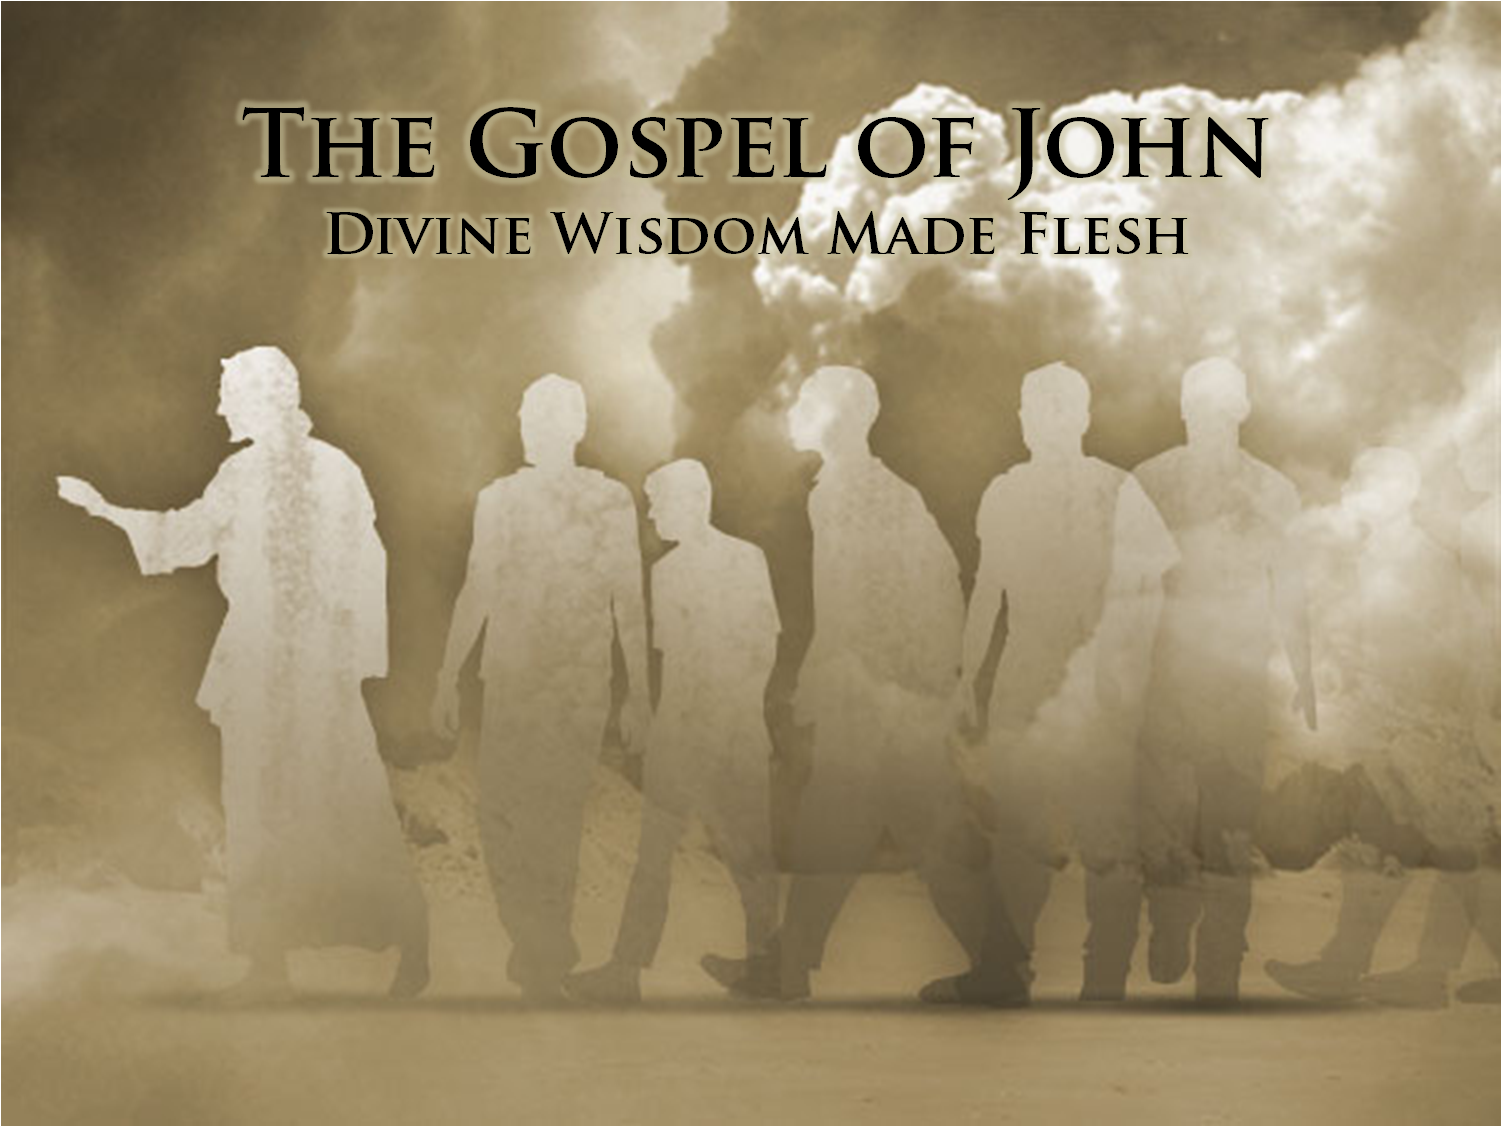 the gospel of john an Abstract the article shows that messianism and kingship in the gospel of  john are involved in the royal psalms, such as psalms 2, 72, and.